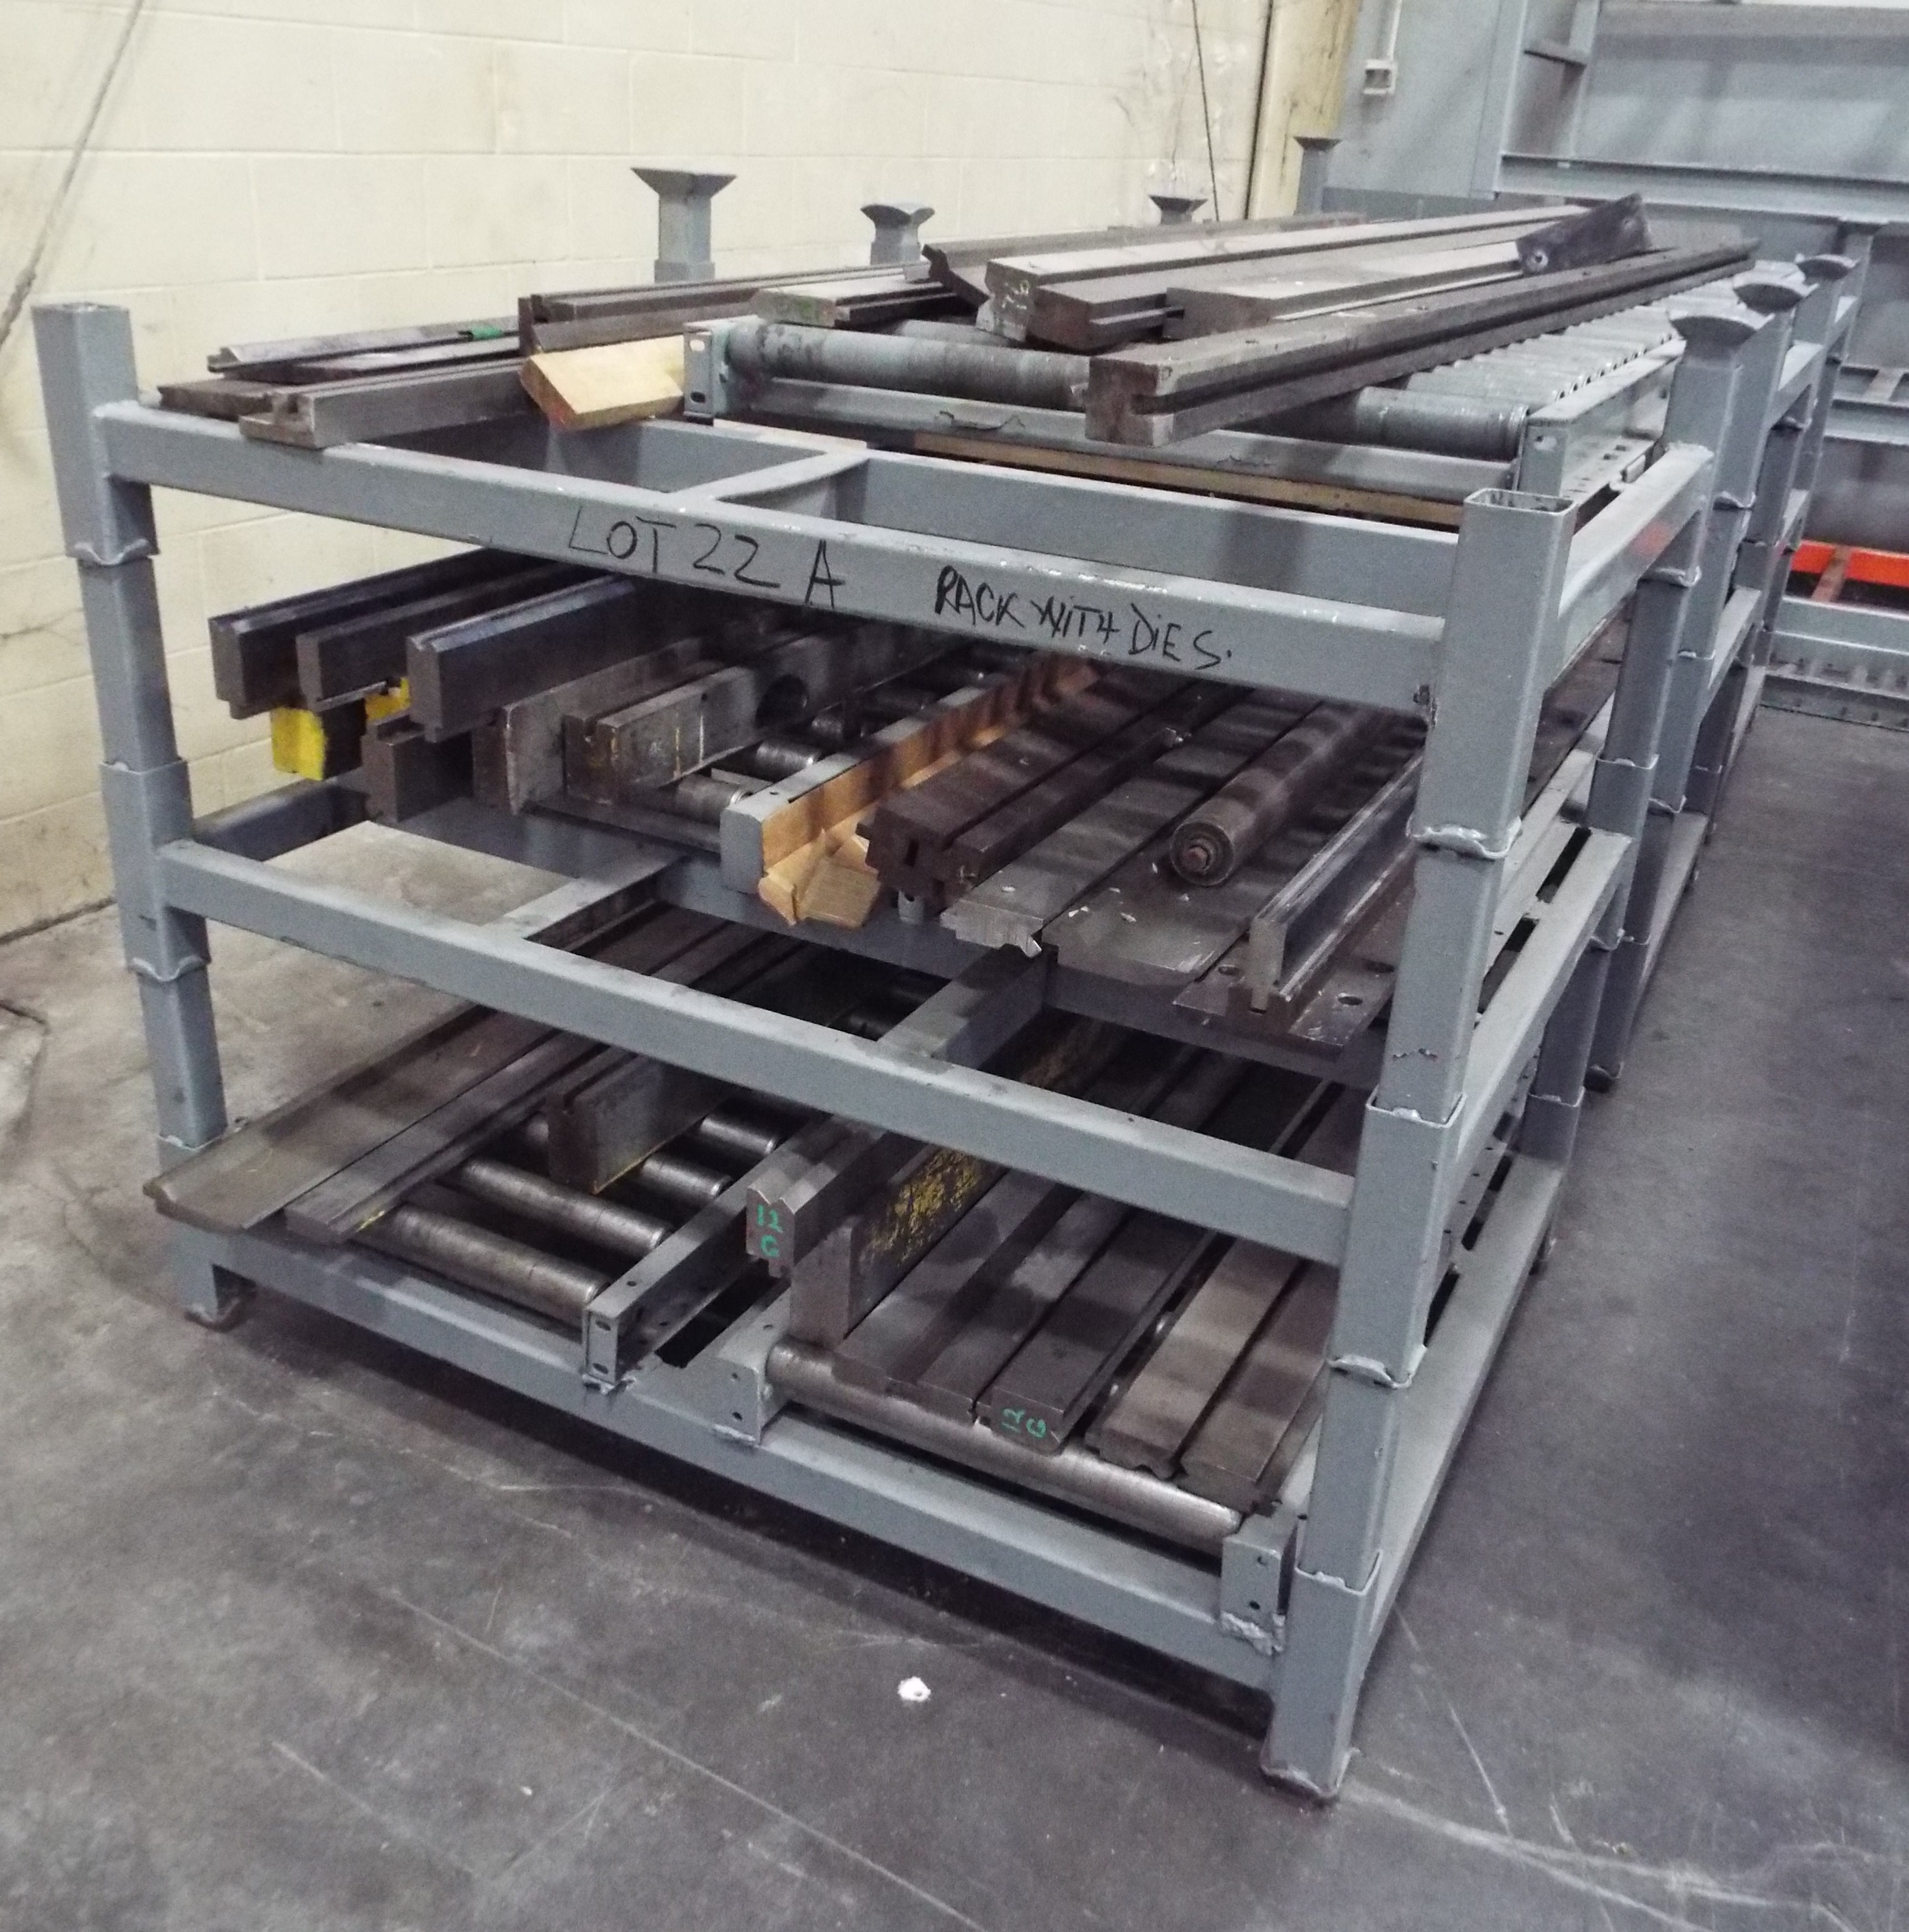 Lot 22A - RACK WITH DIES